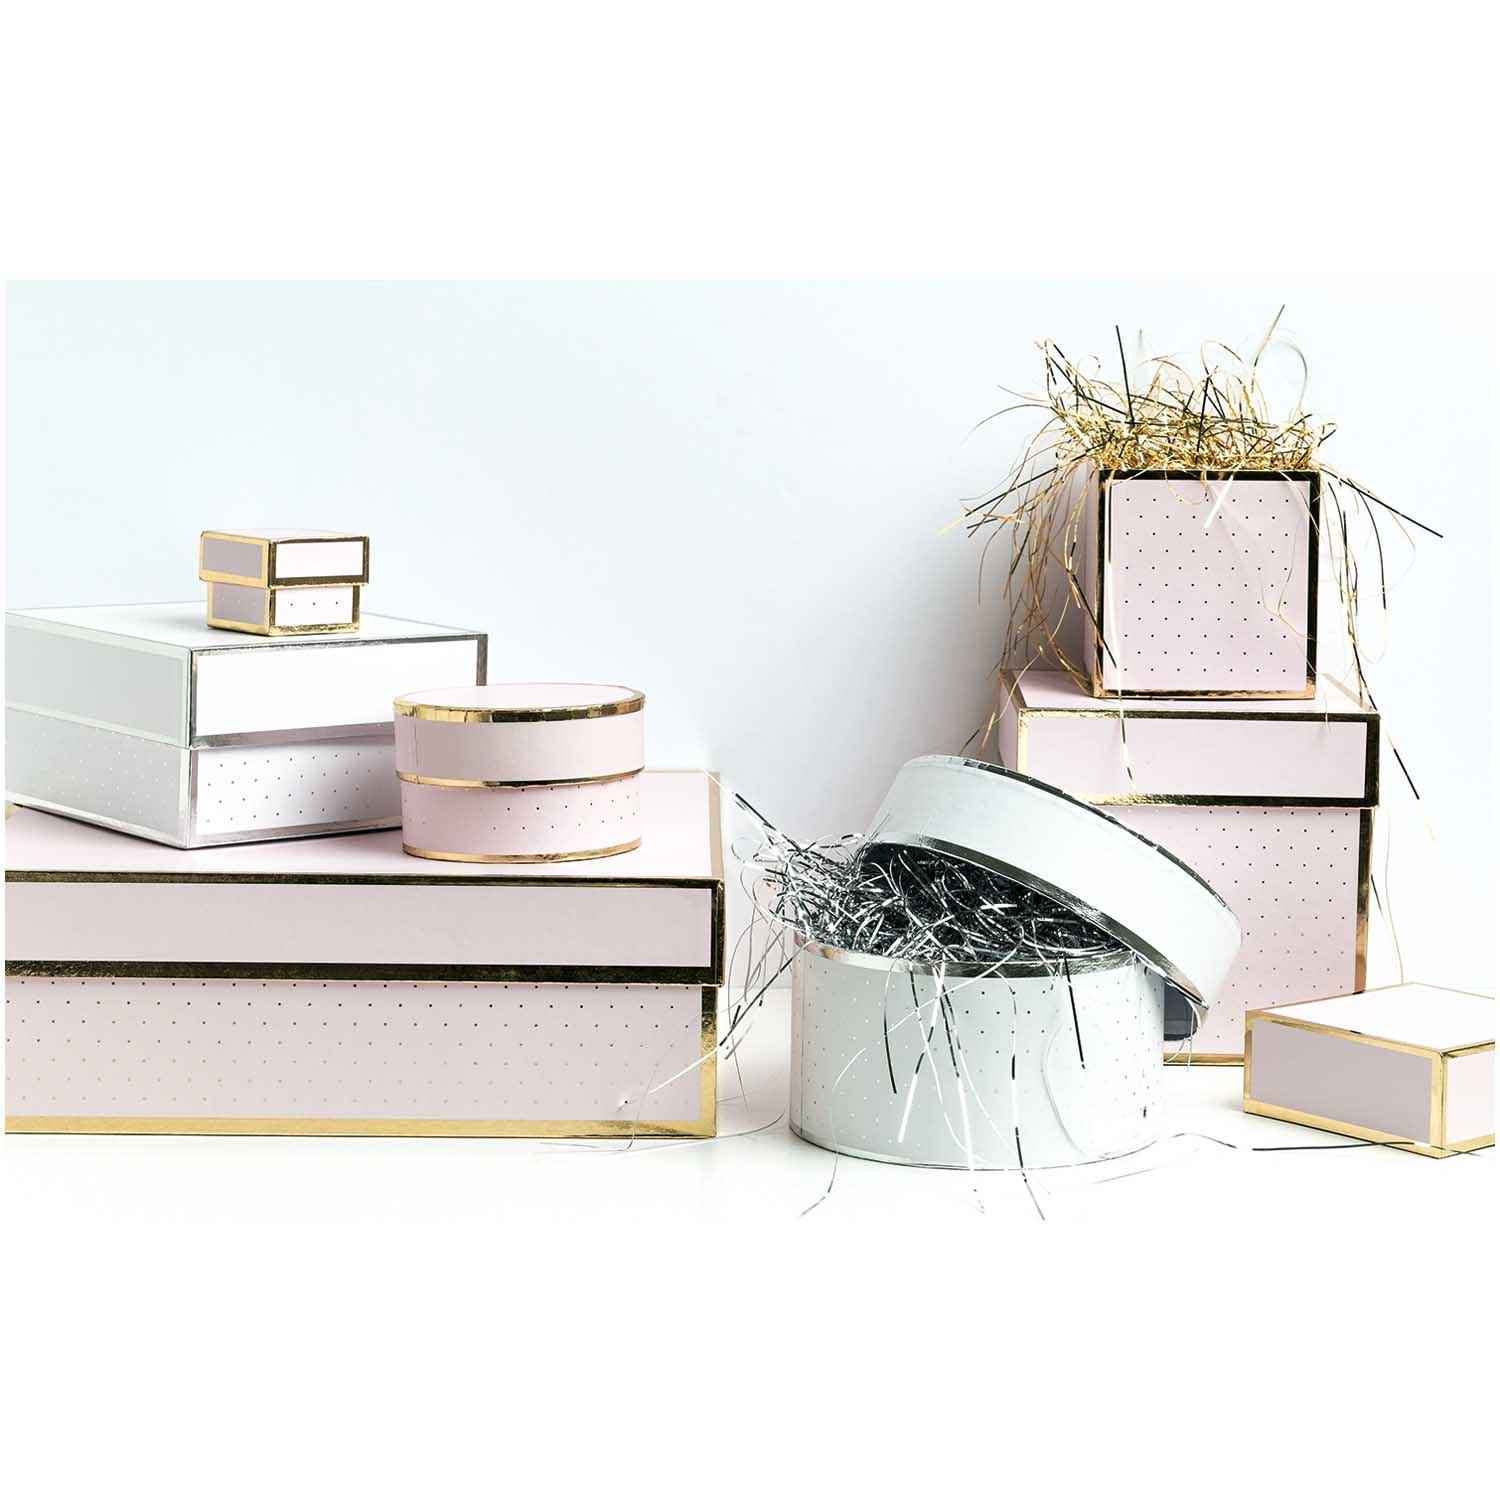 Rico NAY GIFT BOX, PINK, SQUARE, FSC RECYCLED 5X5X4 CM